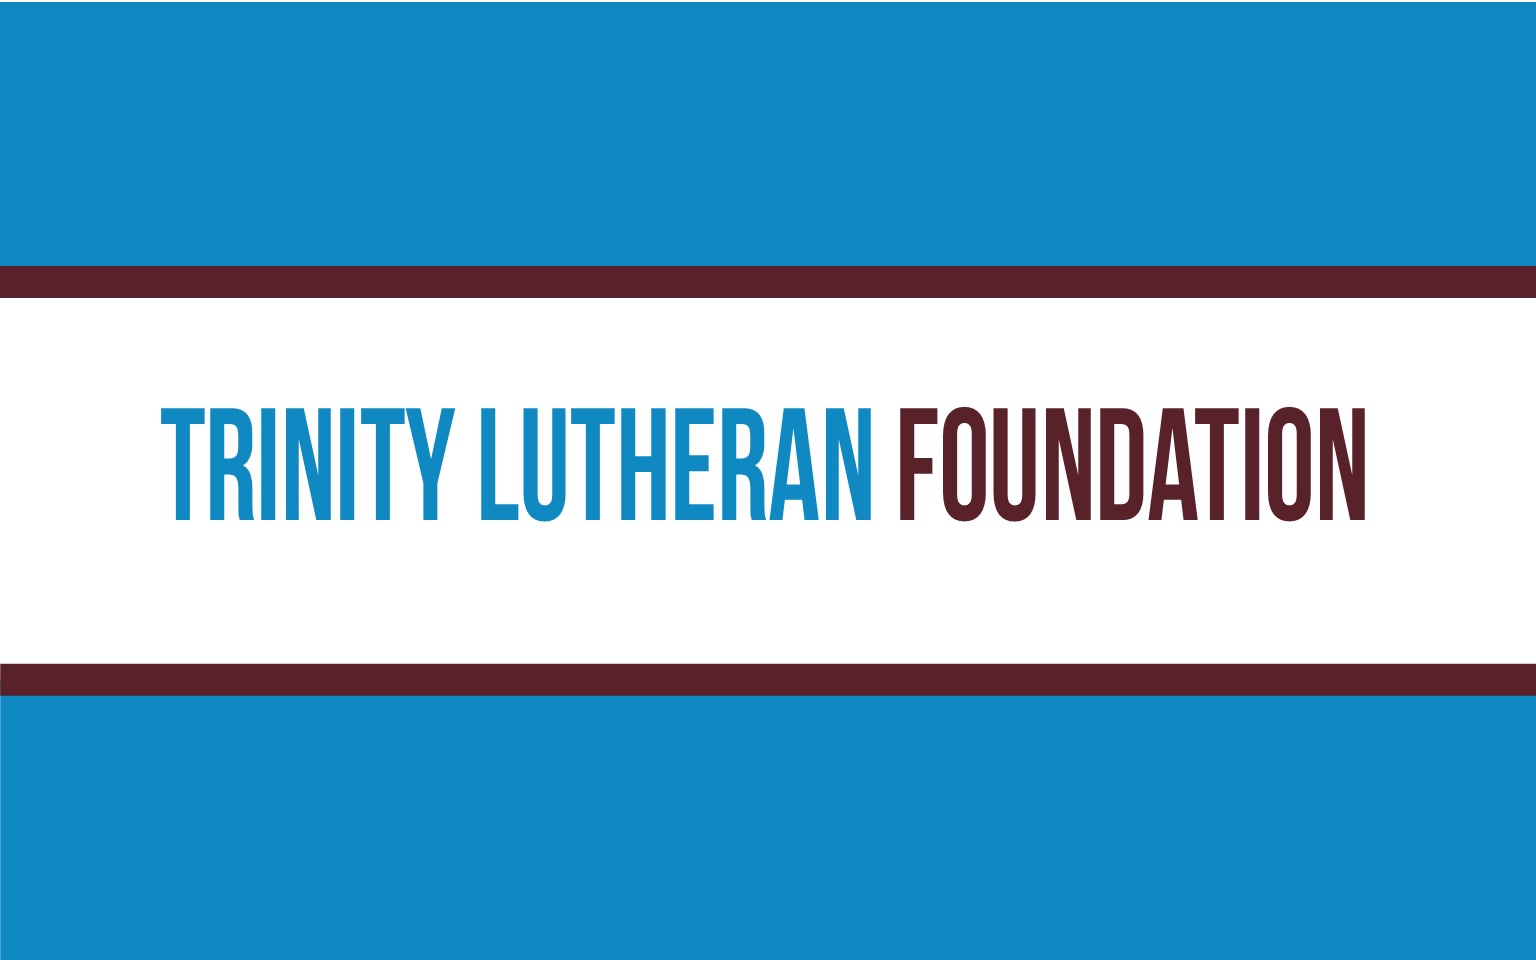 Trinity Lutheran Foundation